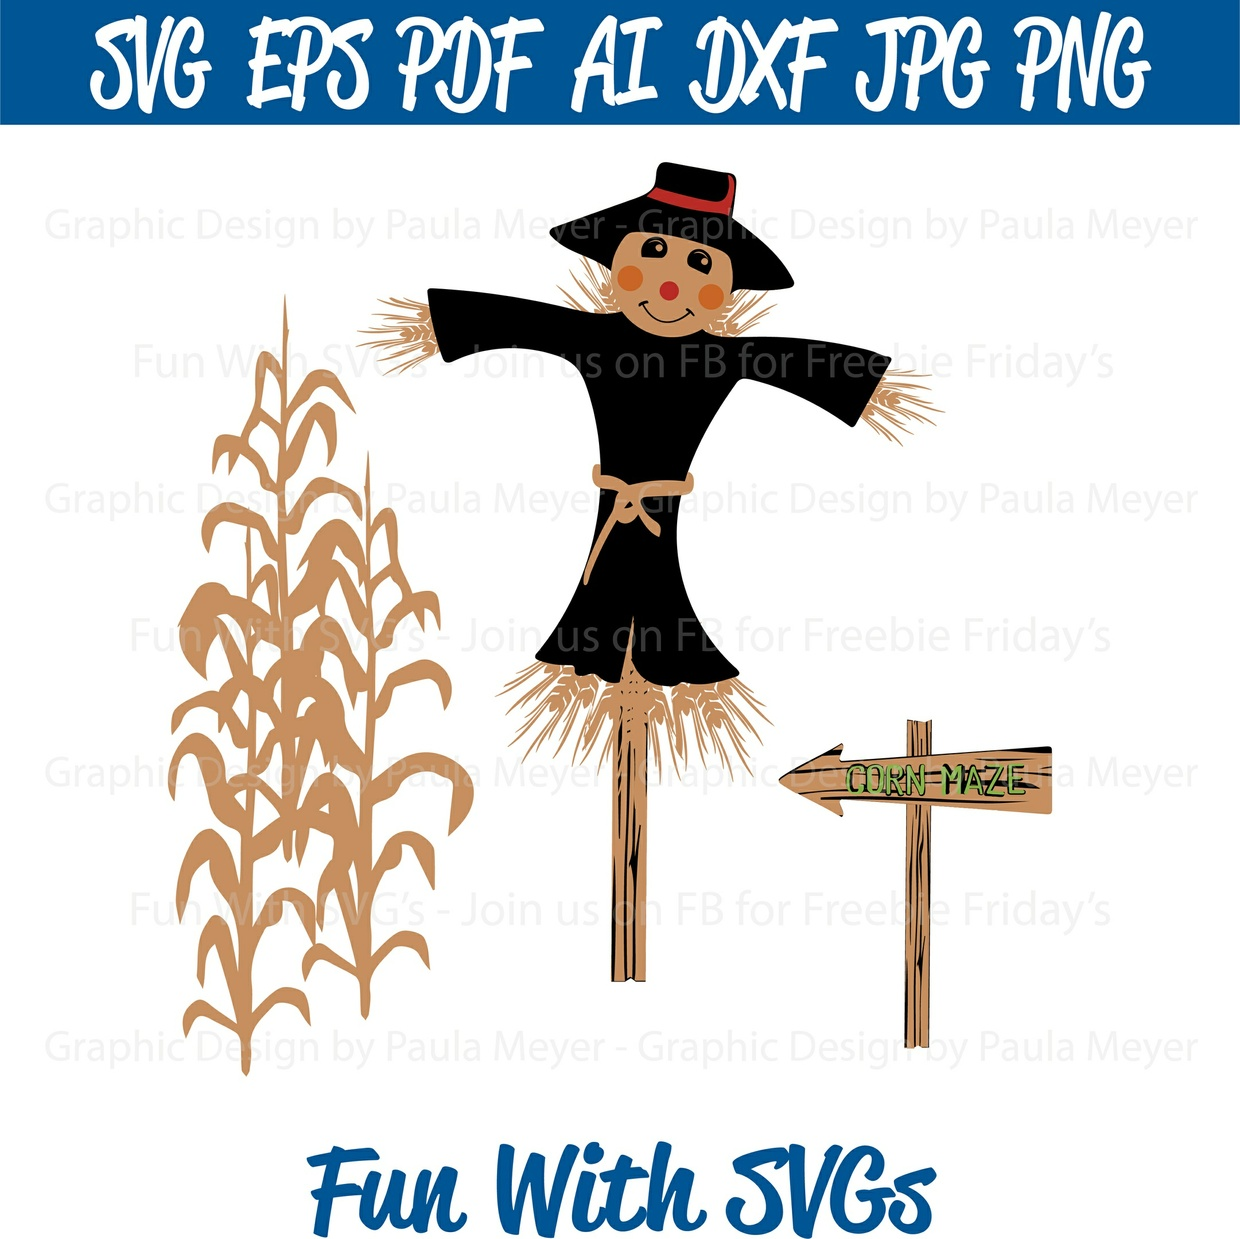 Harvest Set - SVG Cut File, High Resolution Printable Graphics and Editable Vector Art